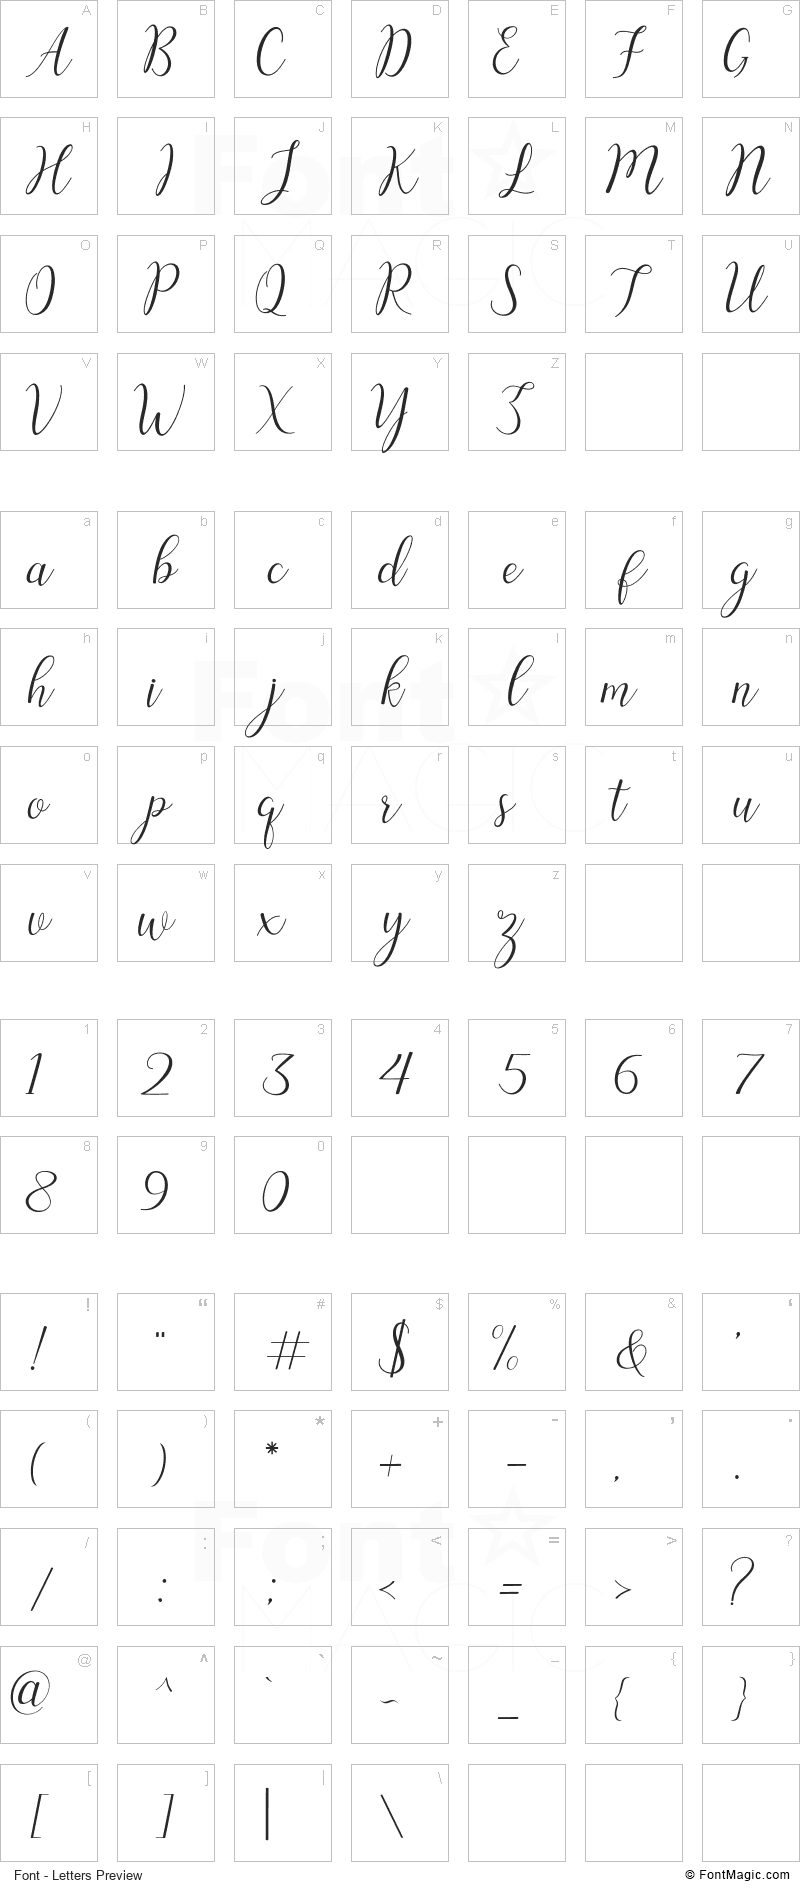 Austina Font - All Latters Preview Chart